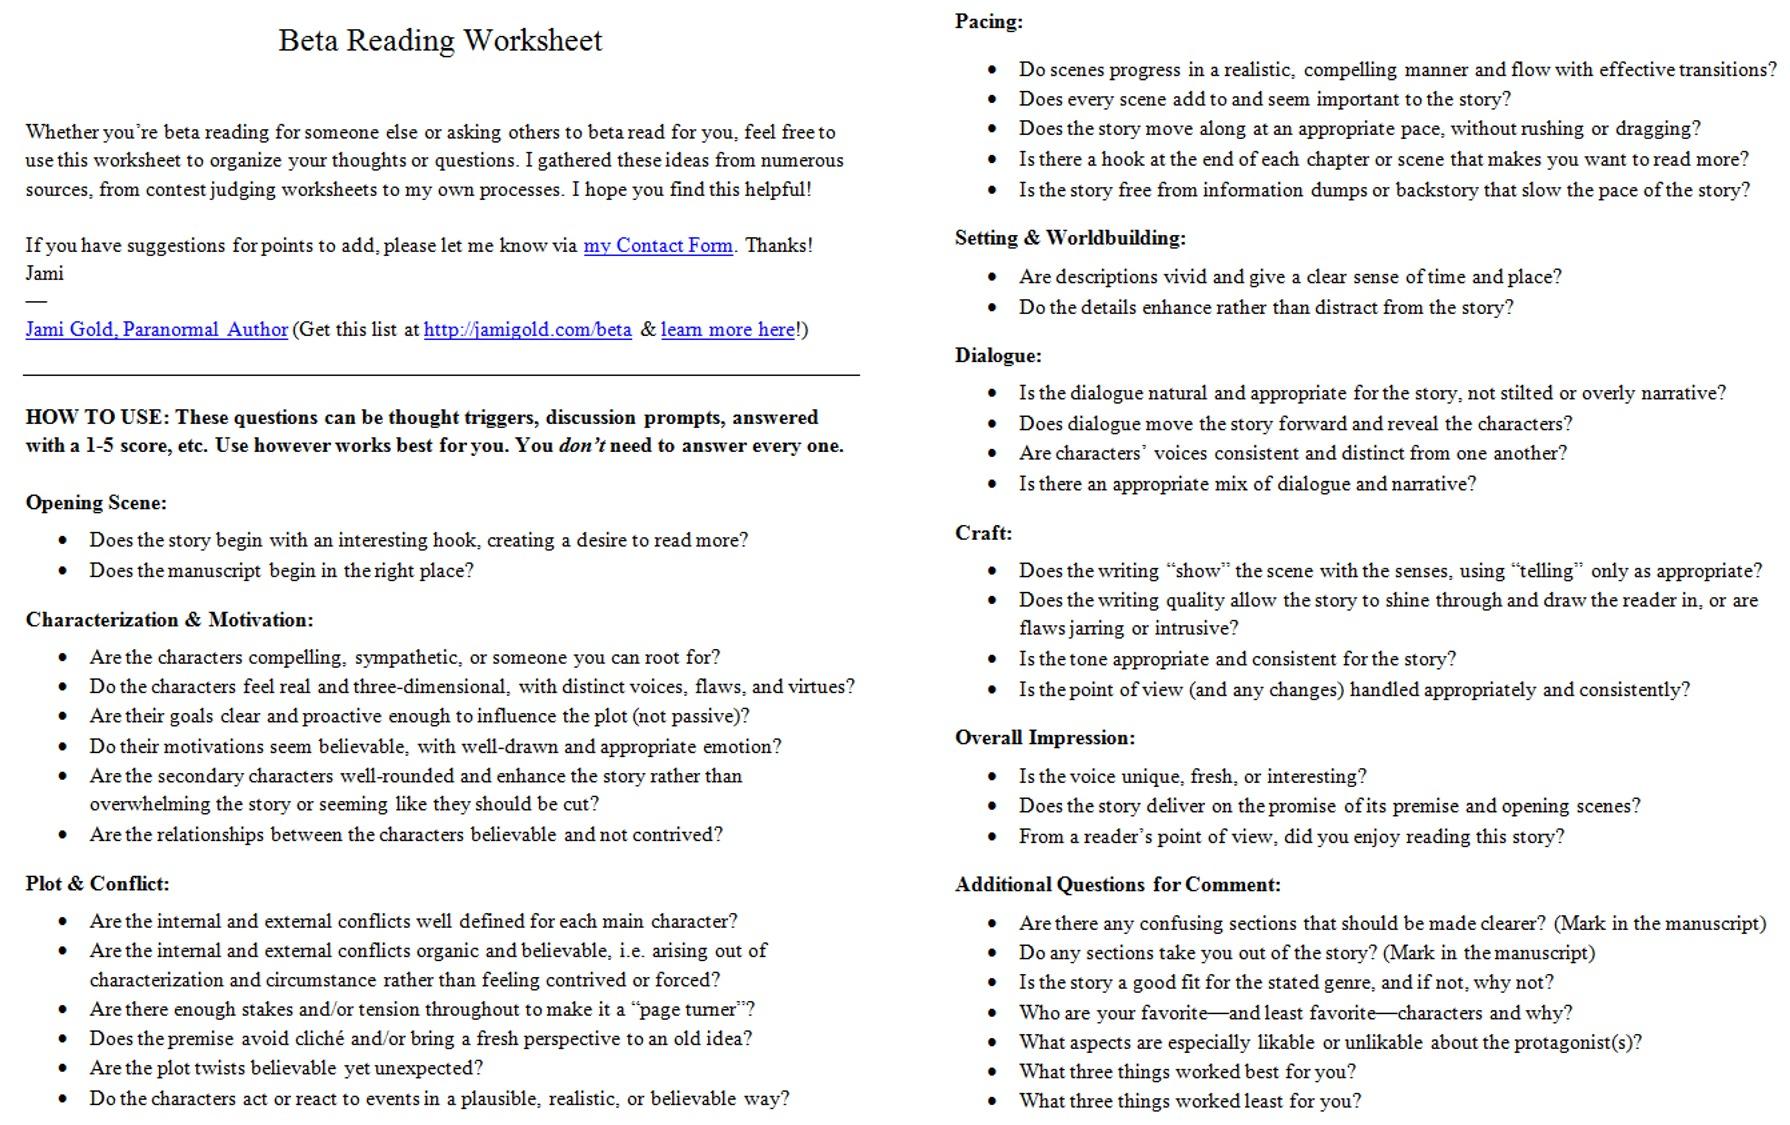 Aldiablosus  Unique Worksheets For Writers  Jami Gold Paranormal Author With Lovable Screen Shot Of The Twopage Beta Reading Worksheet With Divine Intensive Pronouns Worksheet Also Improper Fraction Worksheet In Addition Soft C Worksheets And Multiplication Worksheet Pdf As Well As Bsa Merit Badges Worksheets Additionally Usmc Composite Score Worksheet From Jamigoldcom With Aldiablosus  Lovable Worksheets For Writers  Jami Gold Paranormal Author With Divine Screen Shot Of The Twopage Beta Reading Worksheet And Unique Intensive Pronouns Worksheet Also Improper Fraction Worksheet In Addition Soft C Worksheets From Jamigoldcom